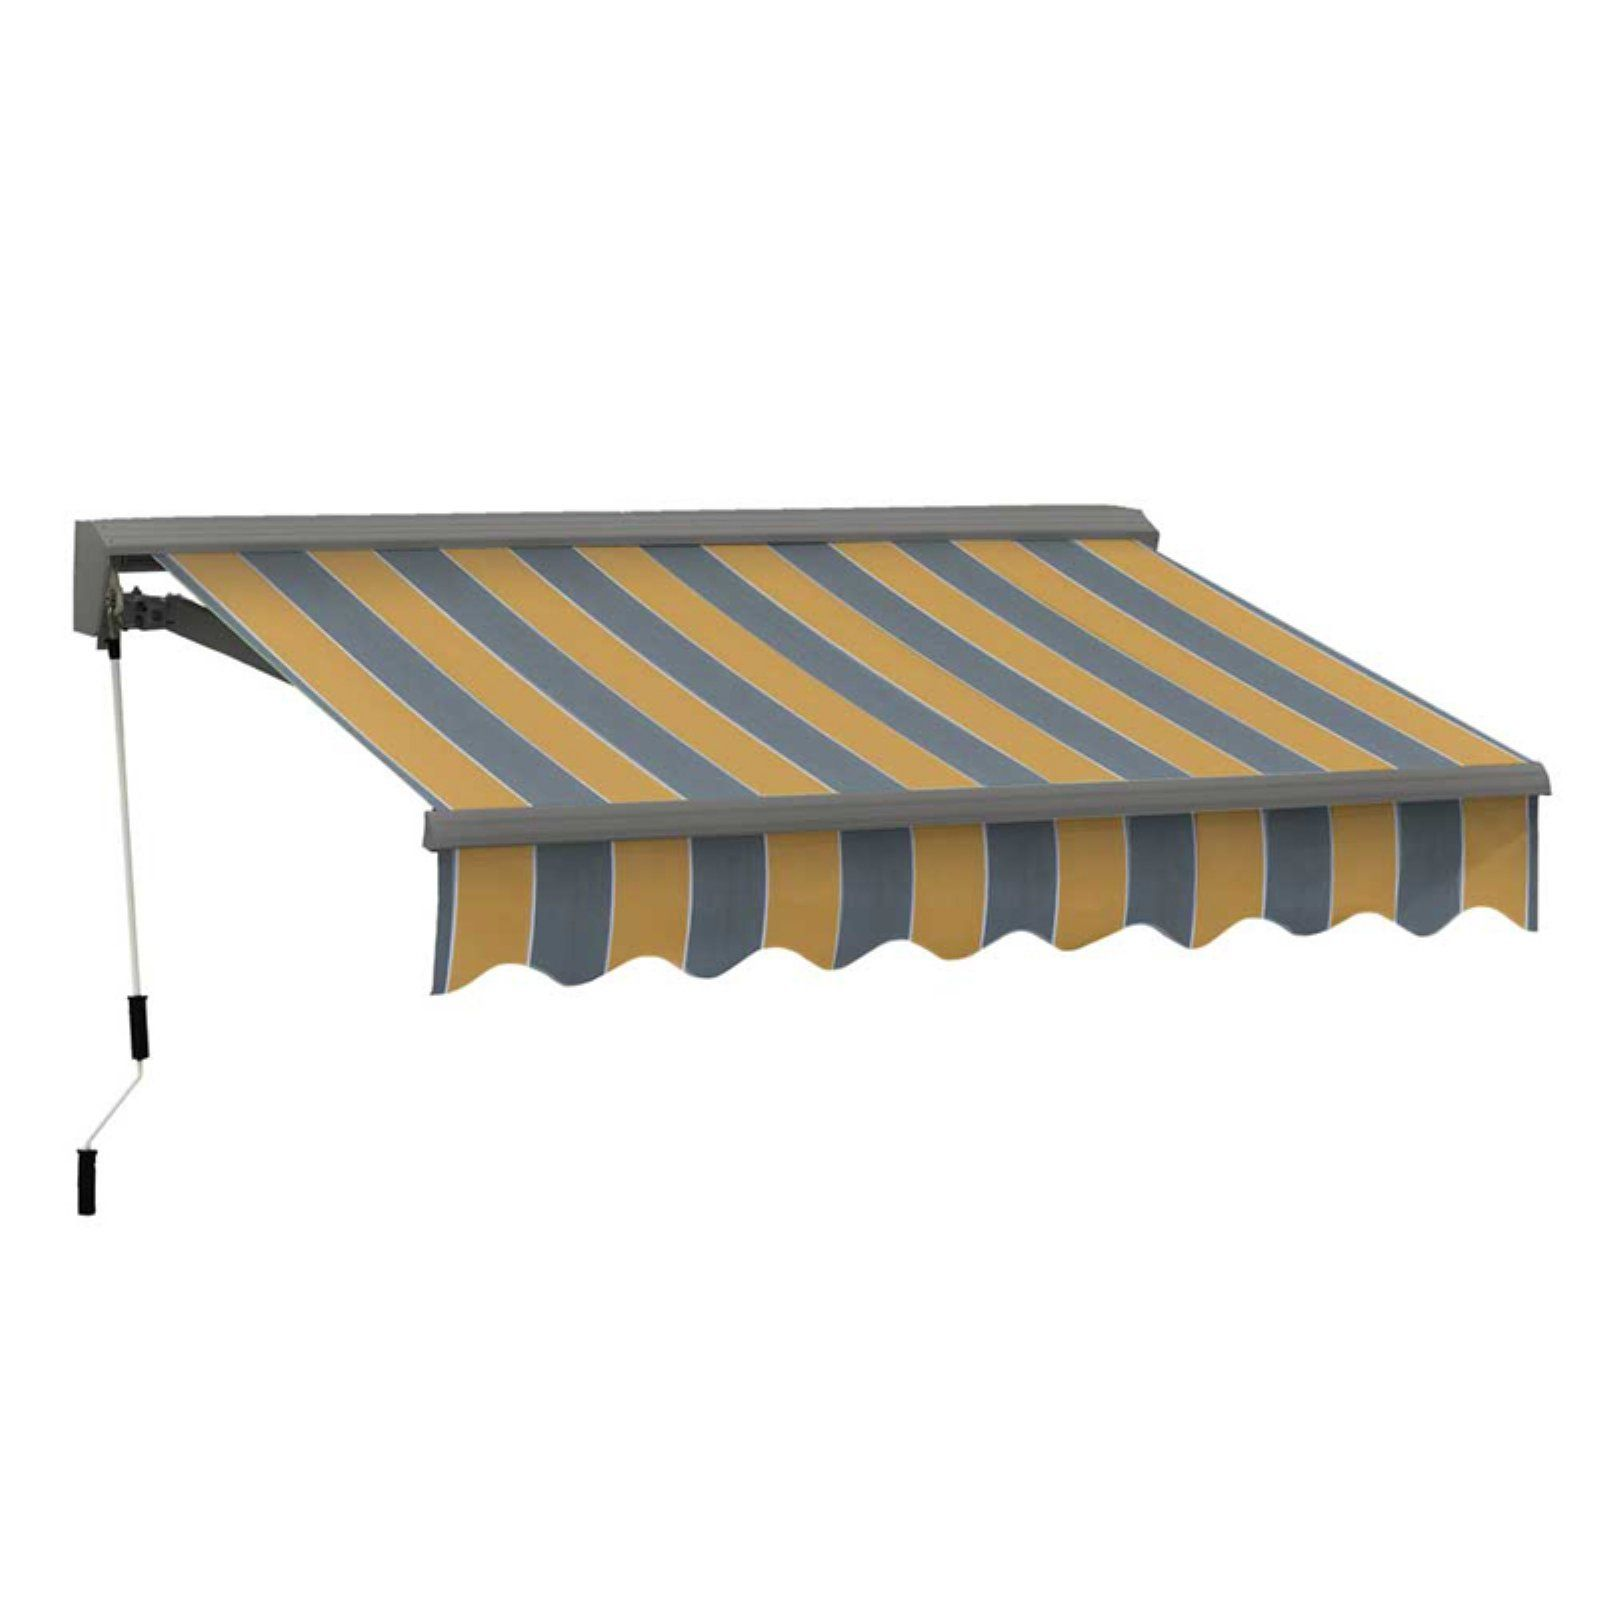 Advaning Classic C Series Electric Retractable Awning Yellow Gray Patio Awning Retractable Awning Door Awnings